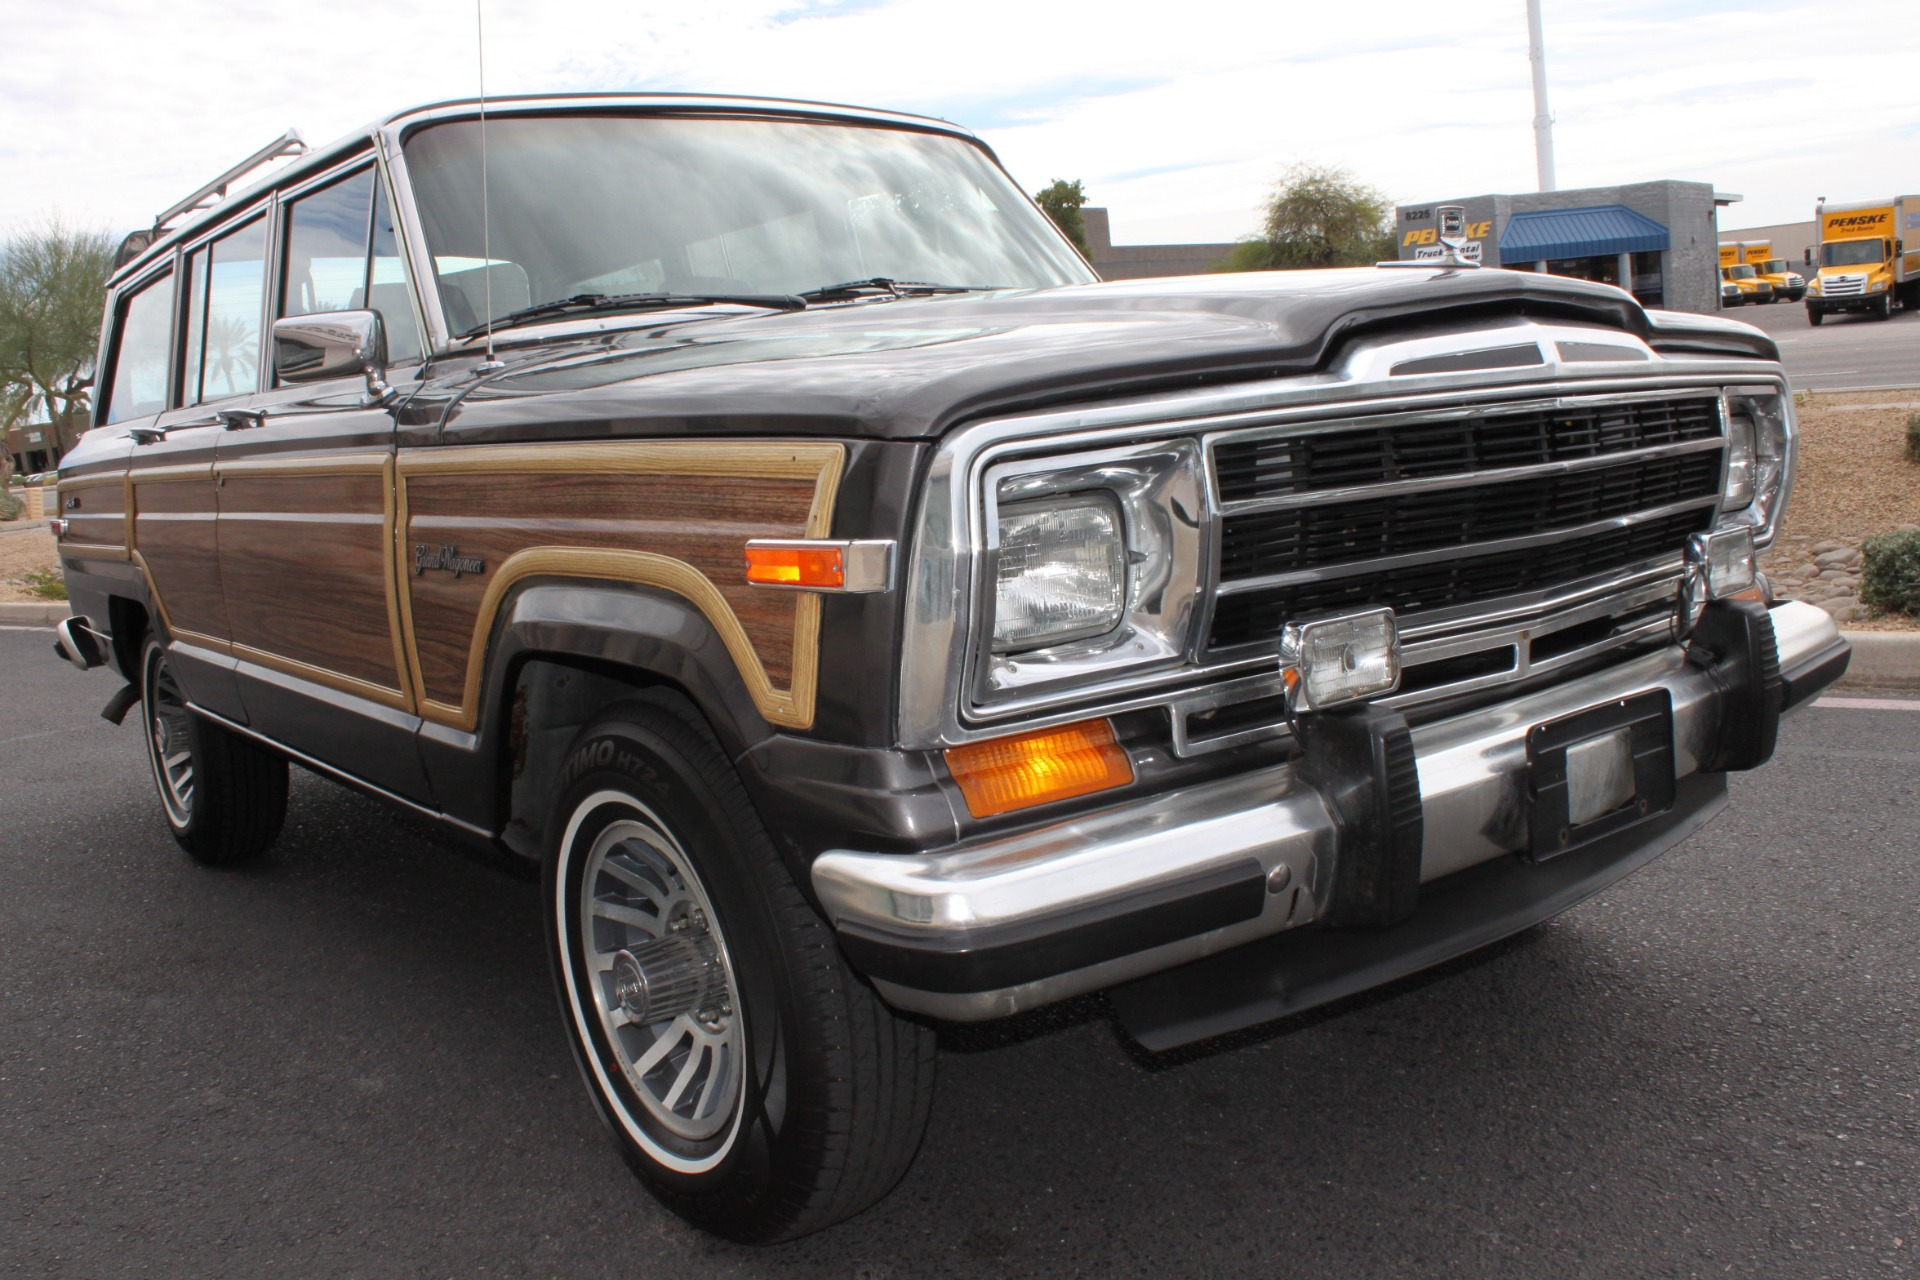 Used-1989-Jeep-Grand-Wagoneer-Mercedes-Benz